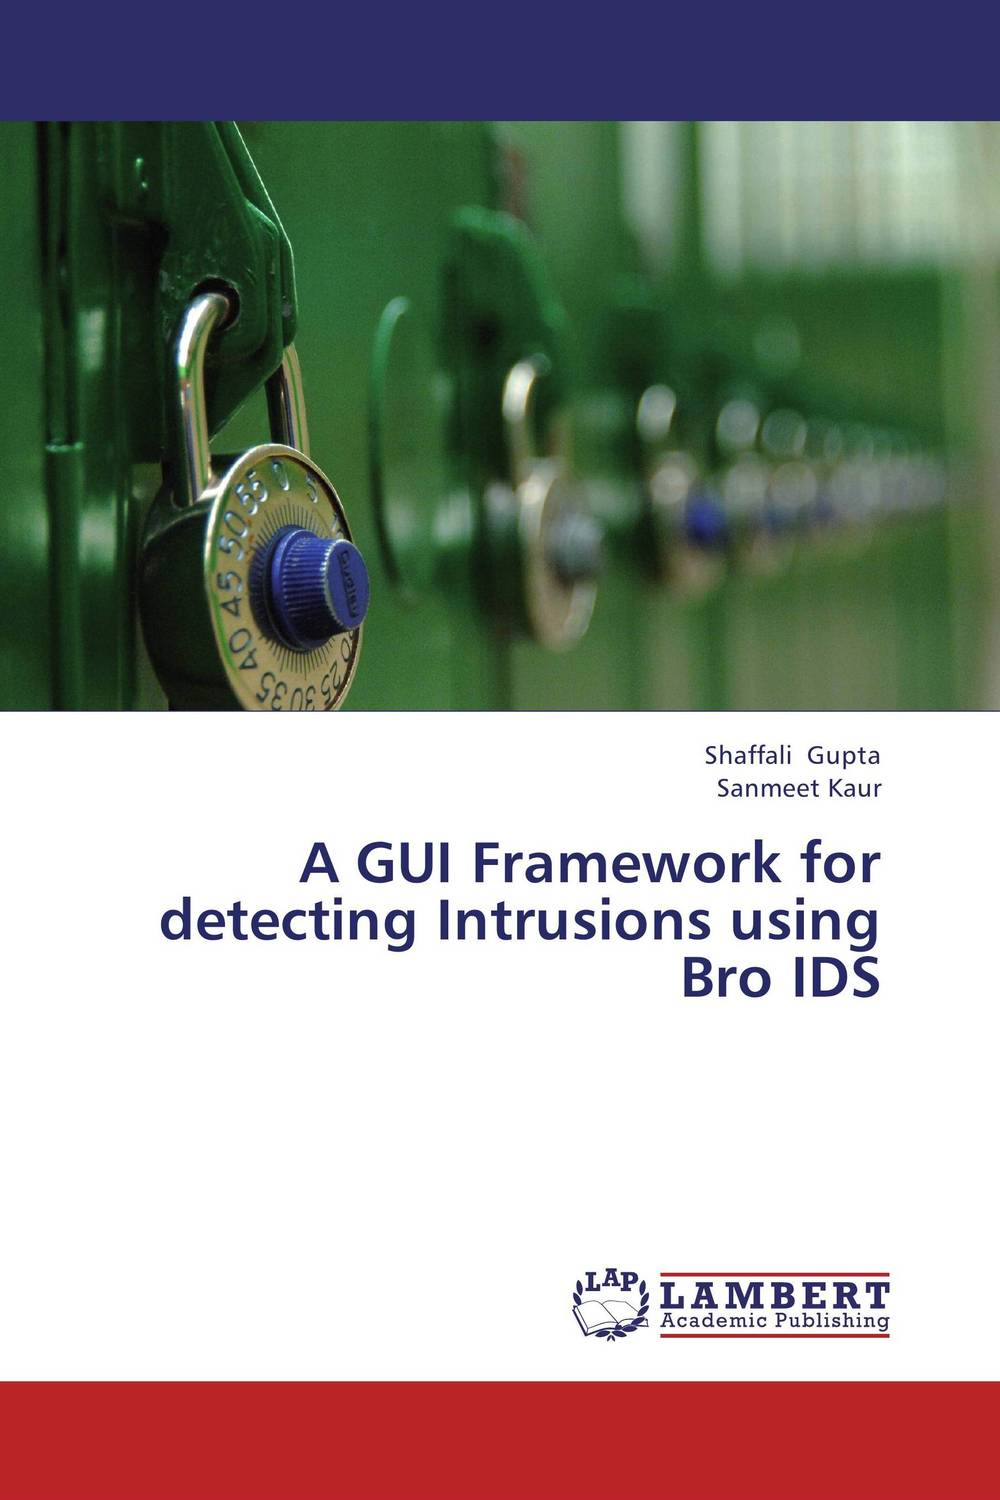 A GUI Framework for detecting Intrusions using Bro IDS ce emc lvd fcc ozone bath spa